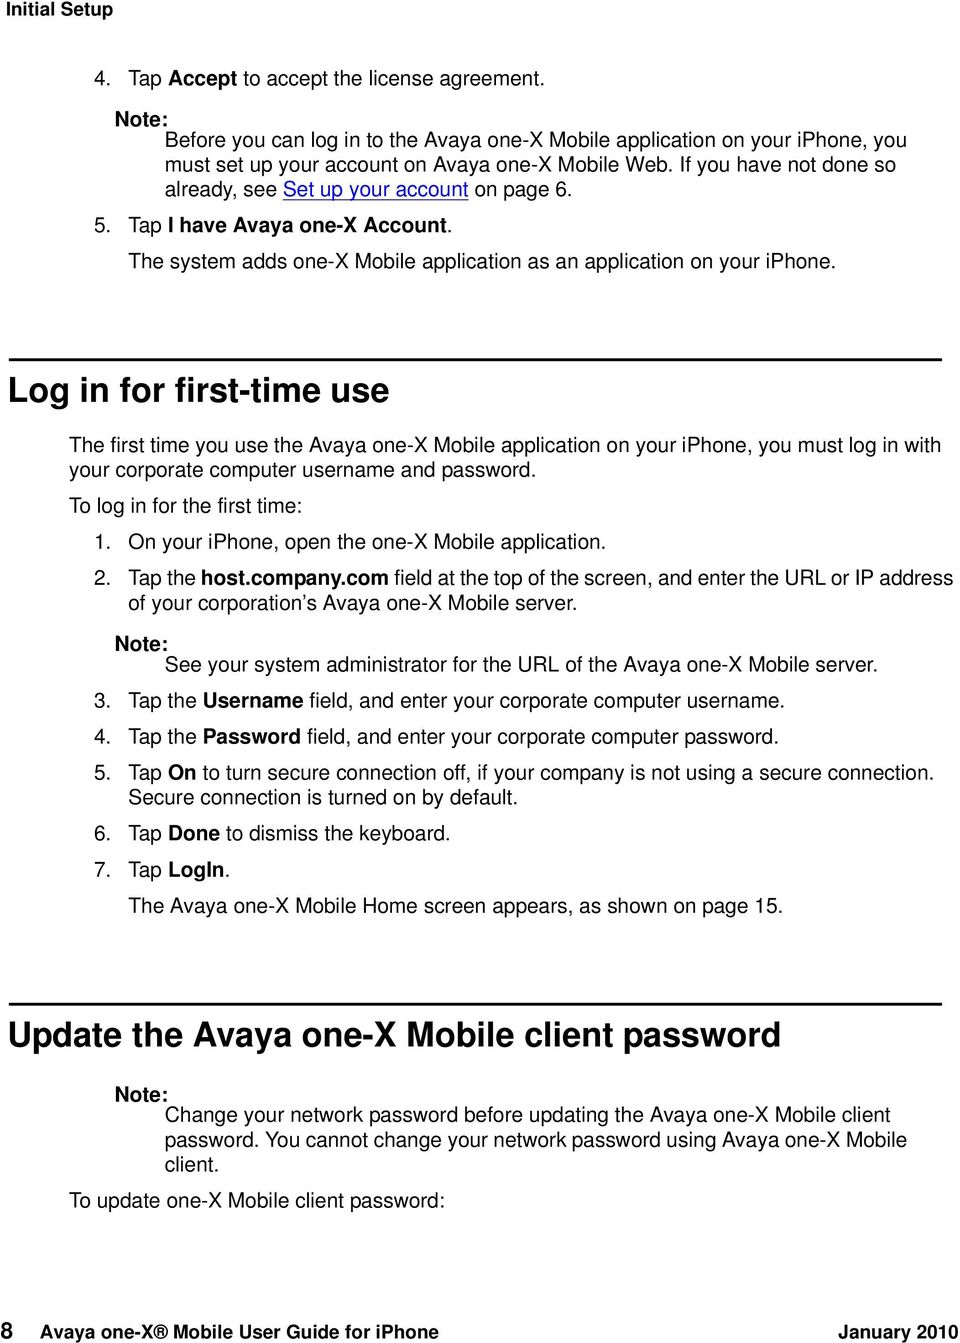 Log in for first-time use The first time you use the Avaya one-x Mobile application on your iphone, you must log in with your corporate computer username and password. To log in for the first time: 1.